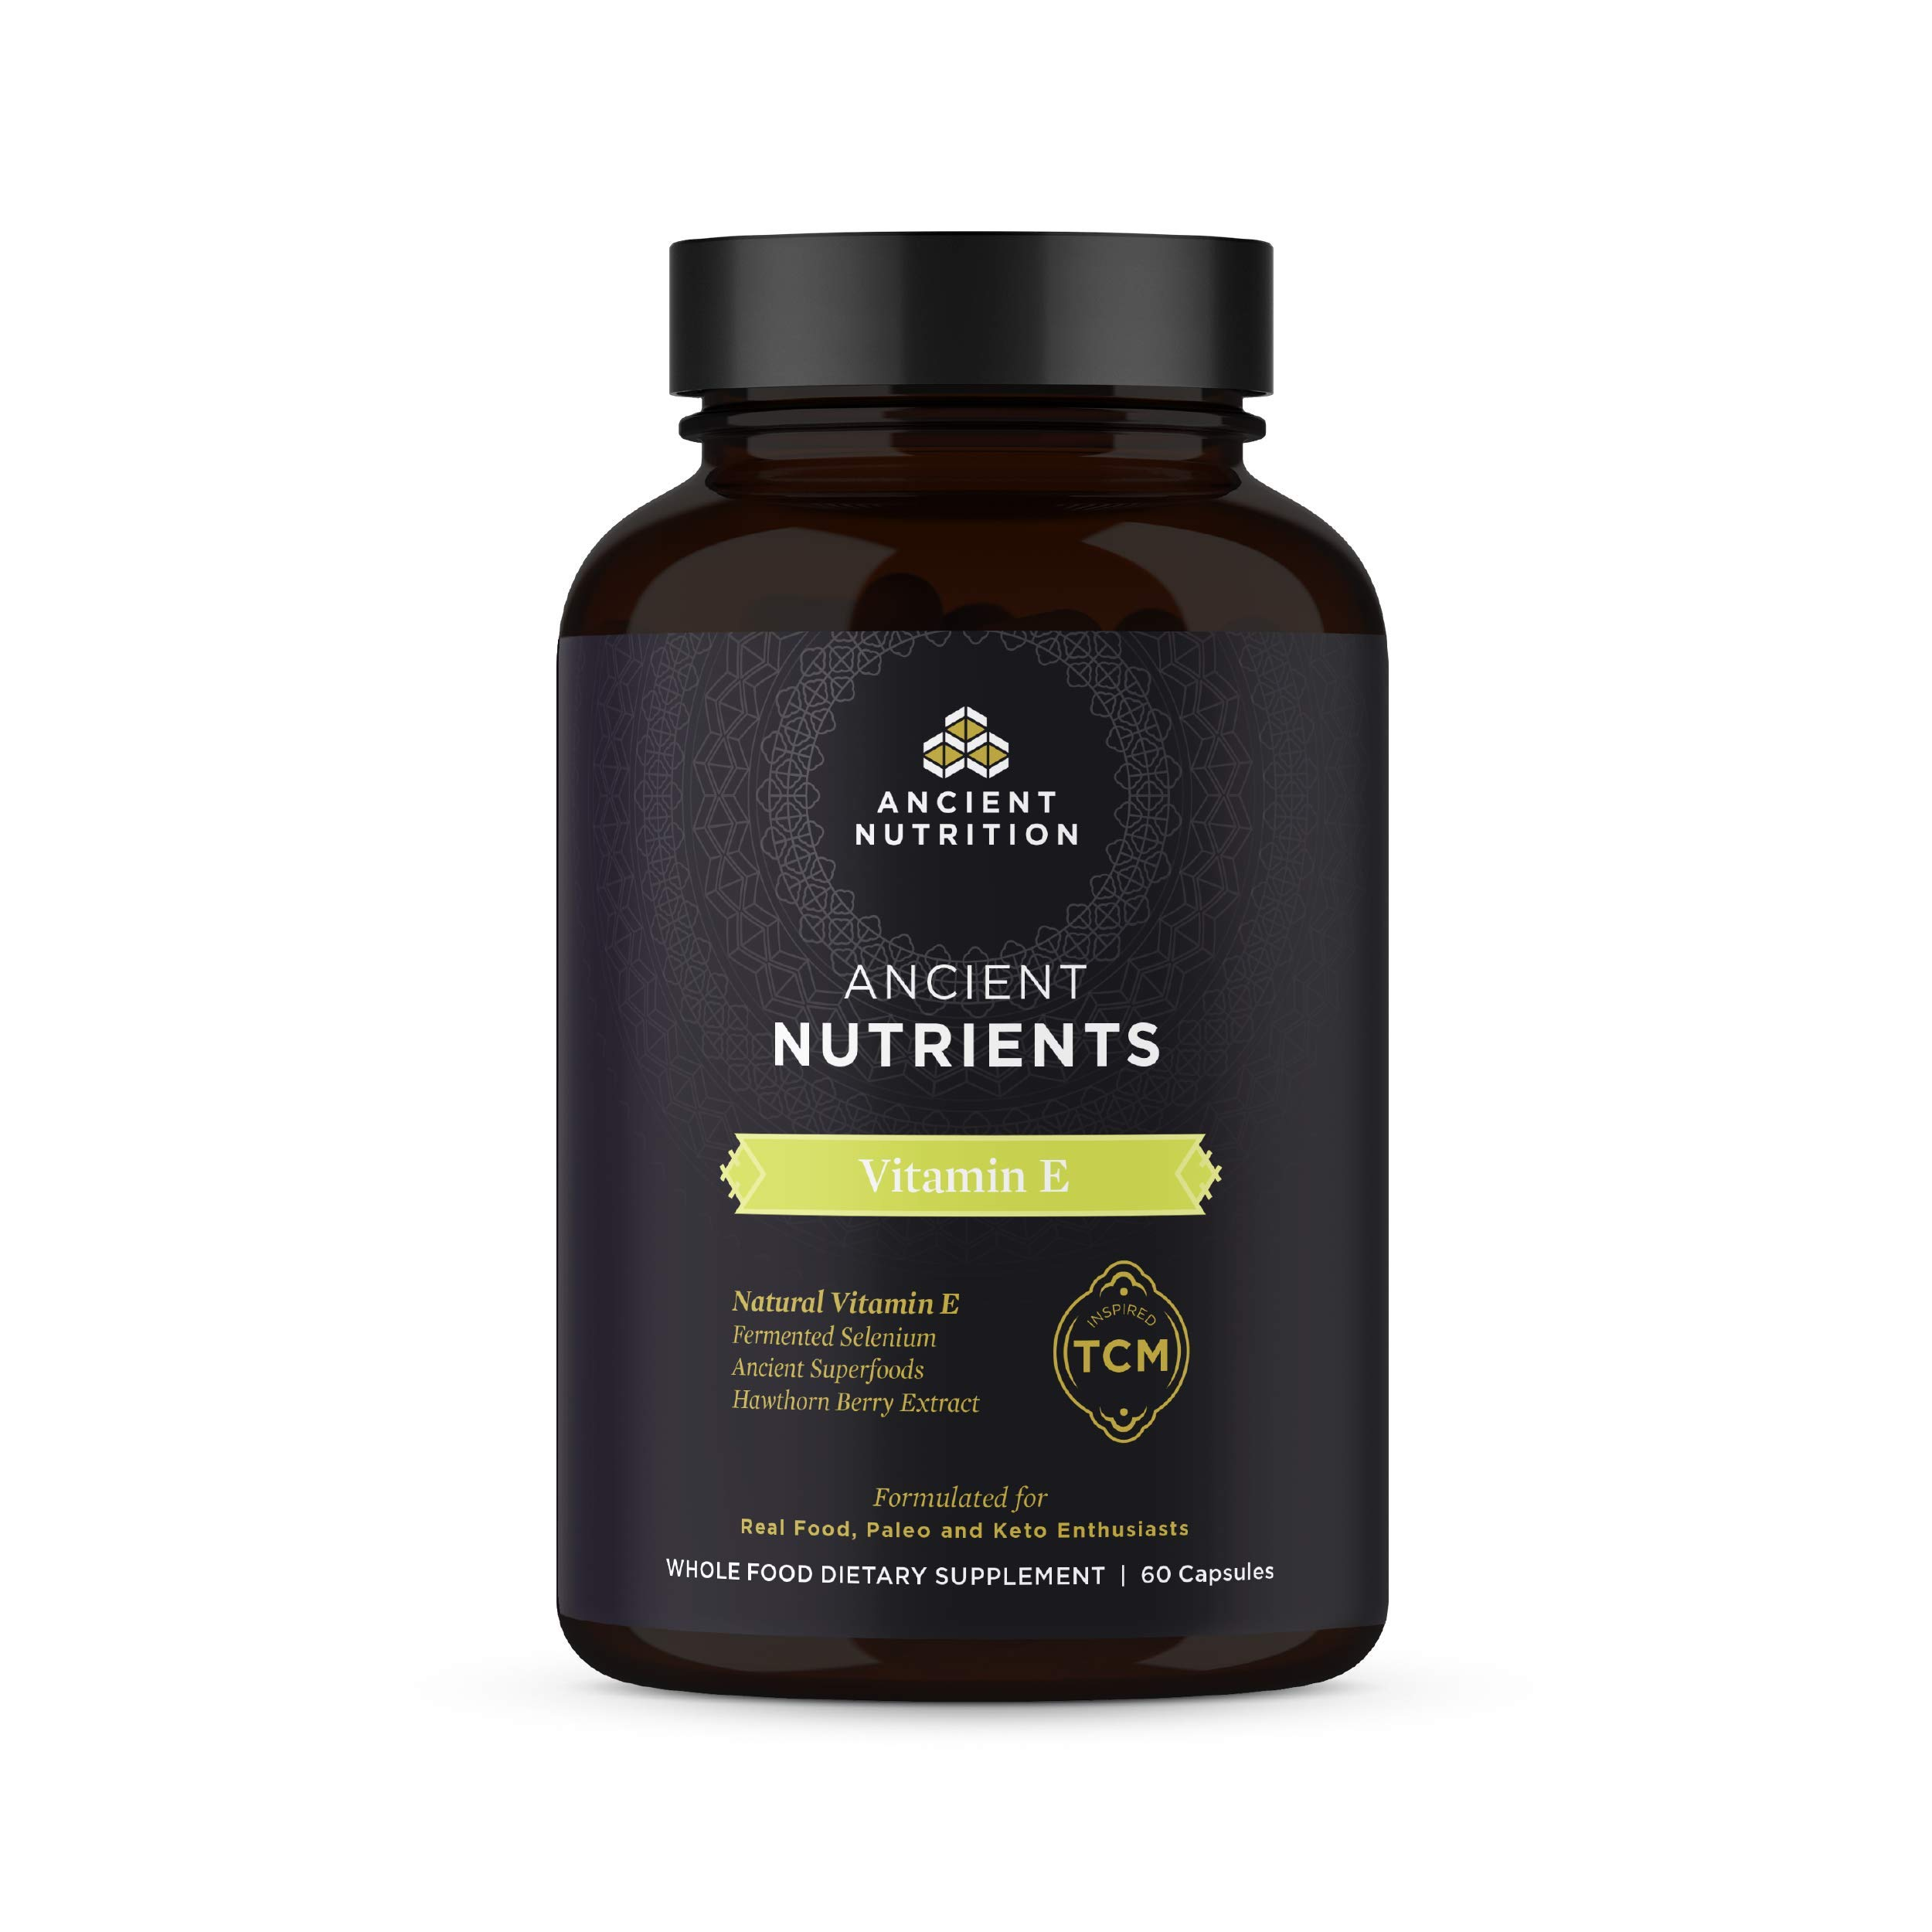 Ancient Nutrition, Ancient Nutrients Vitamin E - 95mg Vitamin E, Fermented Selenium, Enzyme Activated, Paleo & Keto Friendly, 60 Capsules